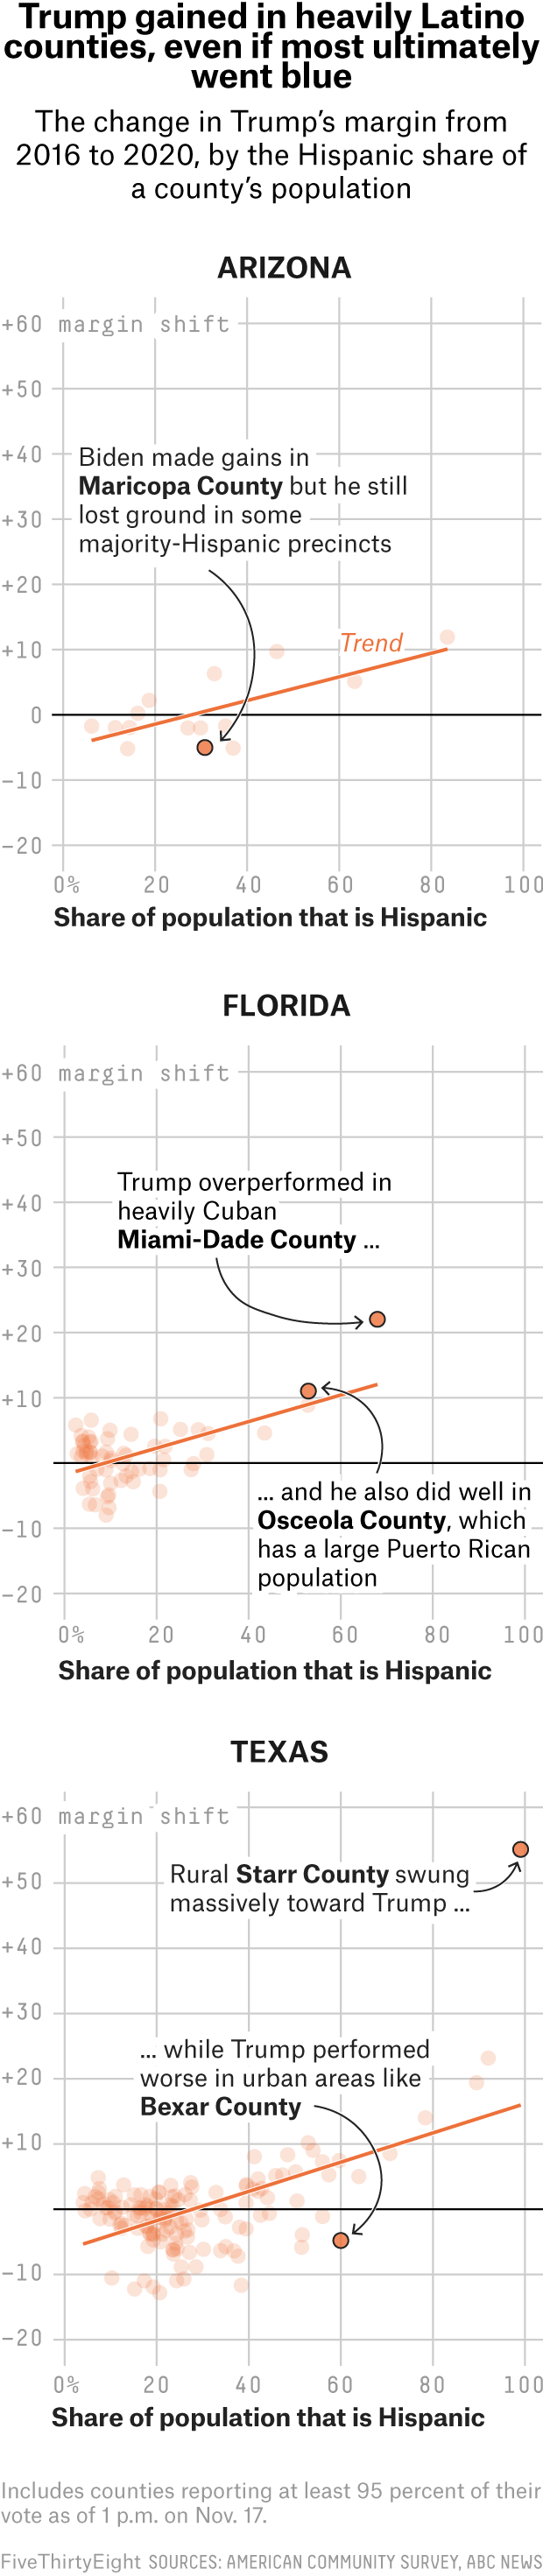 The 40 Weirdest (And Best) Charts We Made In This Long, Strange Year 31